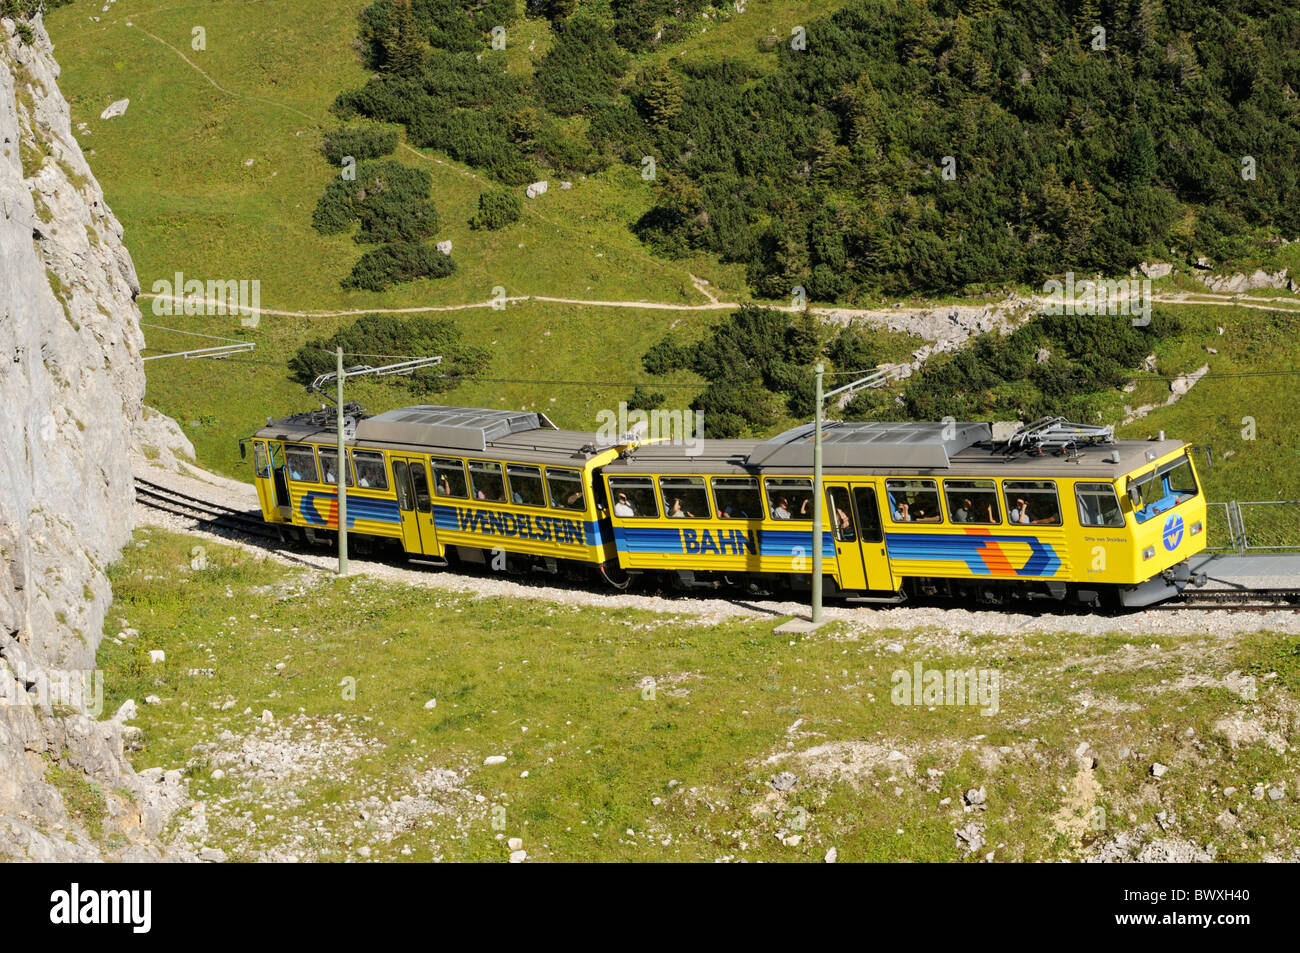 Downhill going train of the Wendelstein cog railroad shortly after the summit station, Bavarian alps, Germany - Stock Image